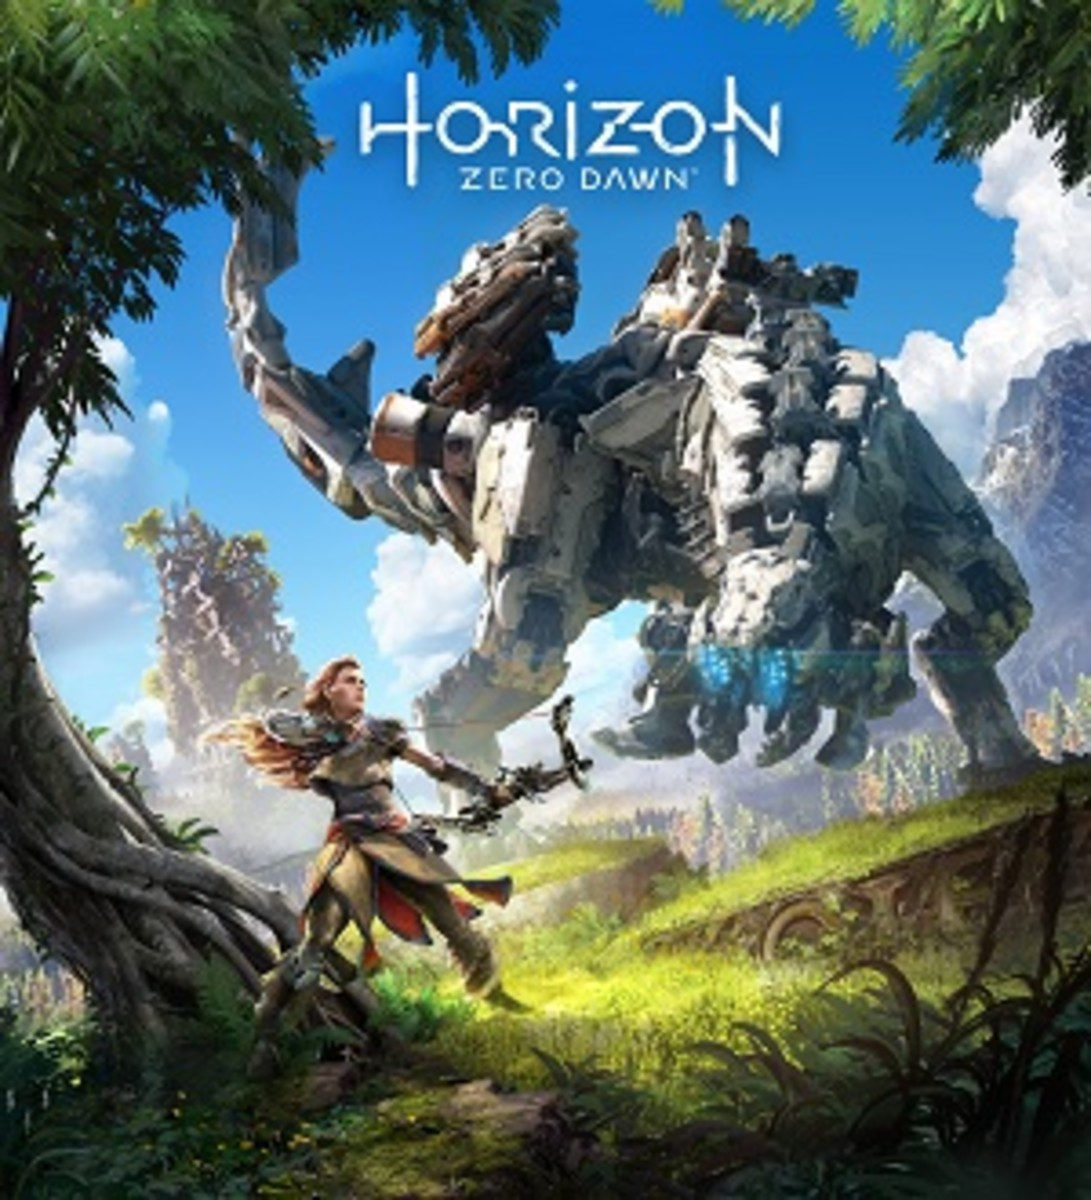 This is the cover art for Horizon Zero Dawn. The cover art copyright is believed to belong to Guerrilla Games / Sony Interactive Entertainment.